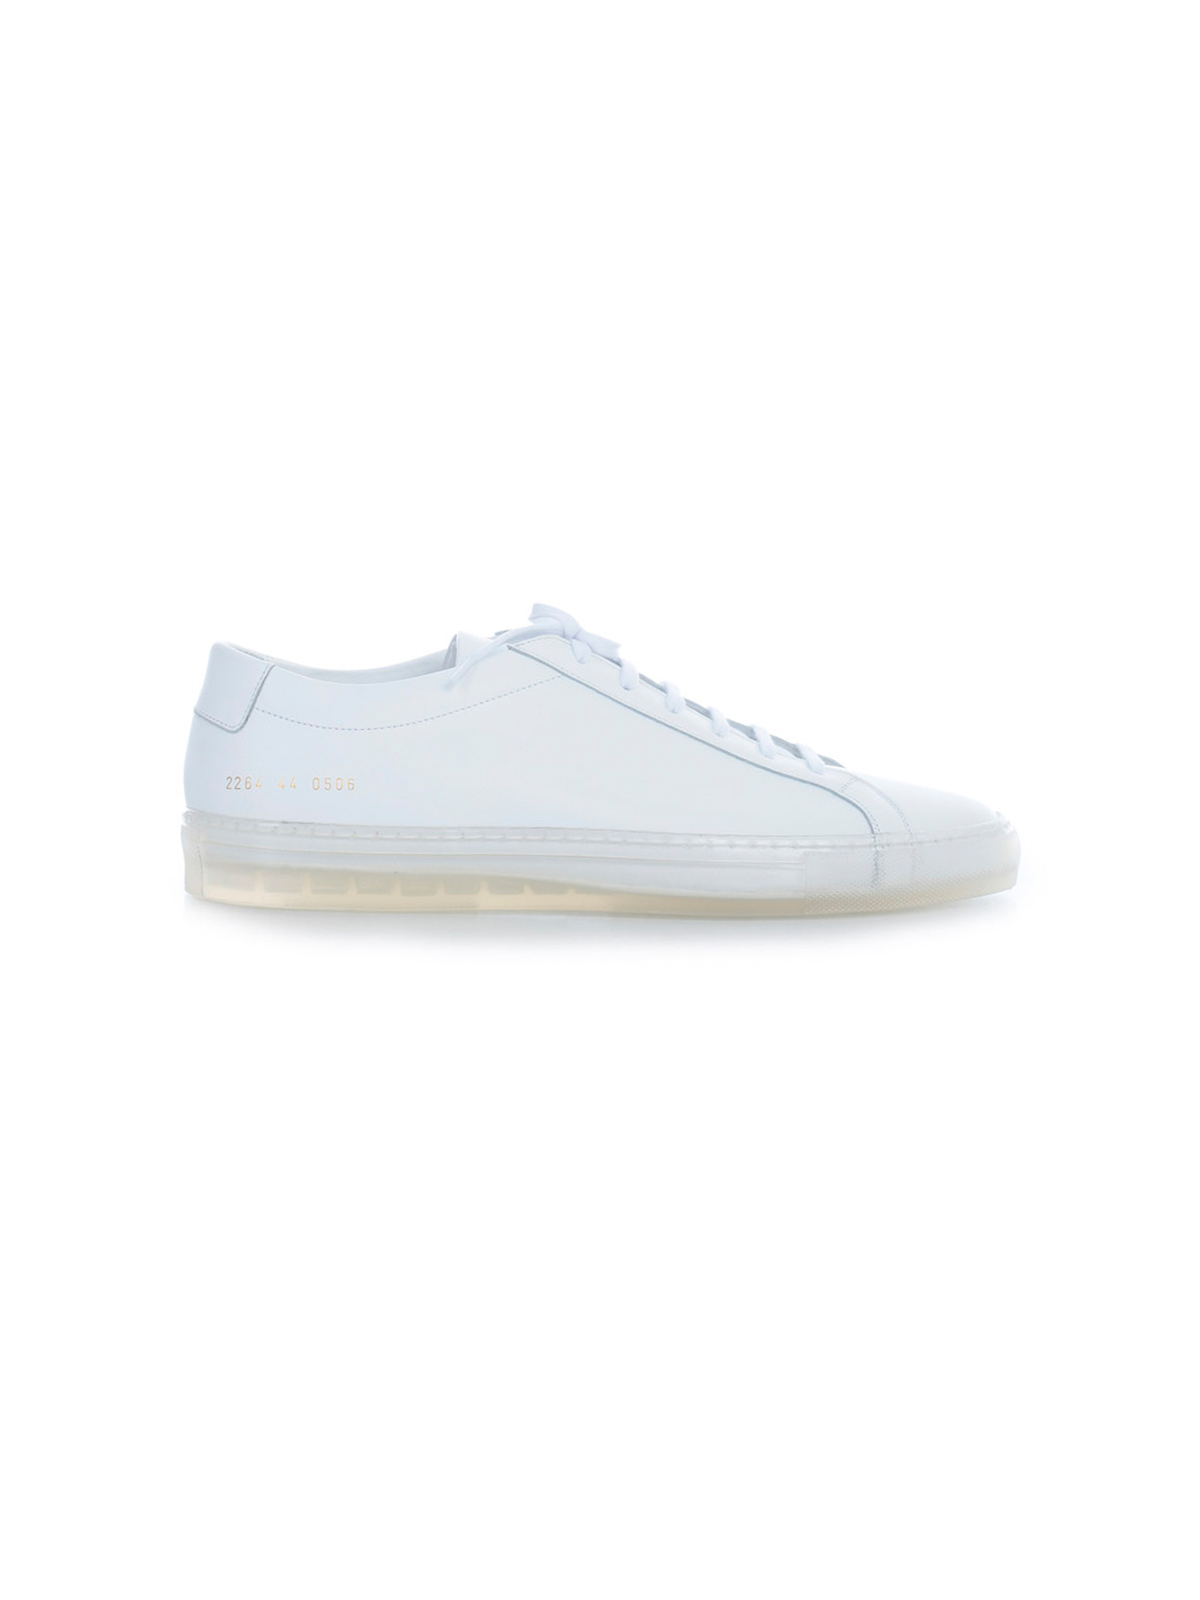 Common Projects Shoes 2264.ORIGINAL